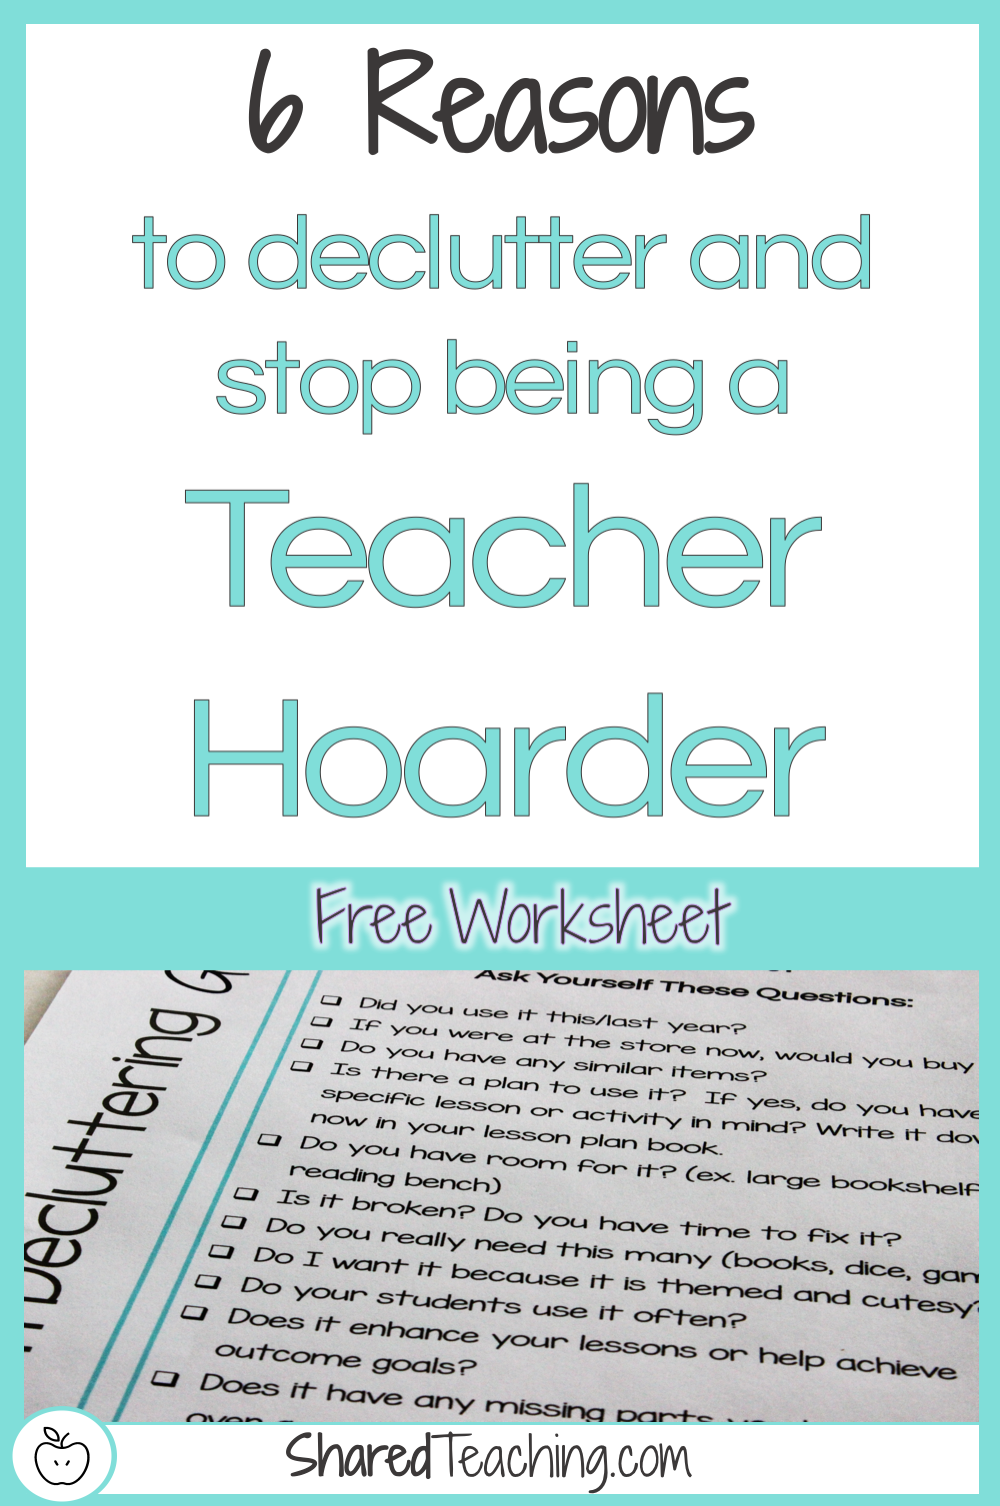 6 Reasons to Declutter and Stop Being a Teacher Hoarder   Tired of all the teacher clutter in your classroom and feeling like a hoarder? Get organized with tips here and a free declutter guide. Click through to start getting your dream clutter-free classroom today!